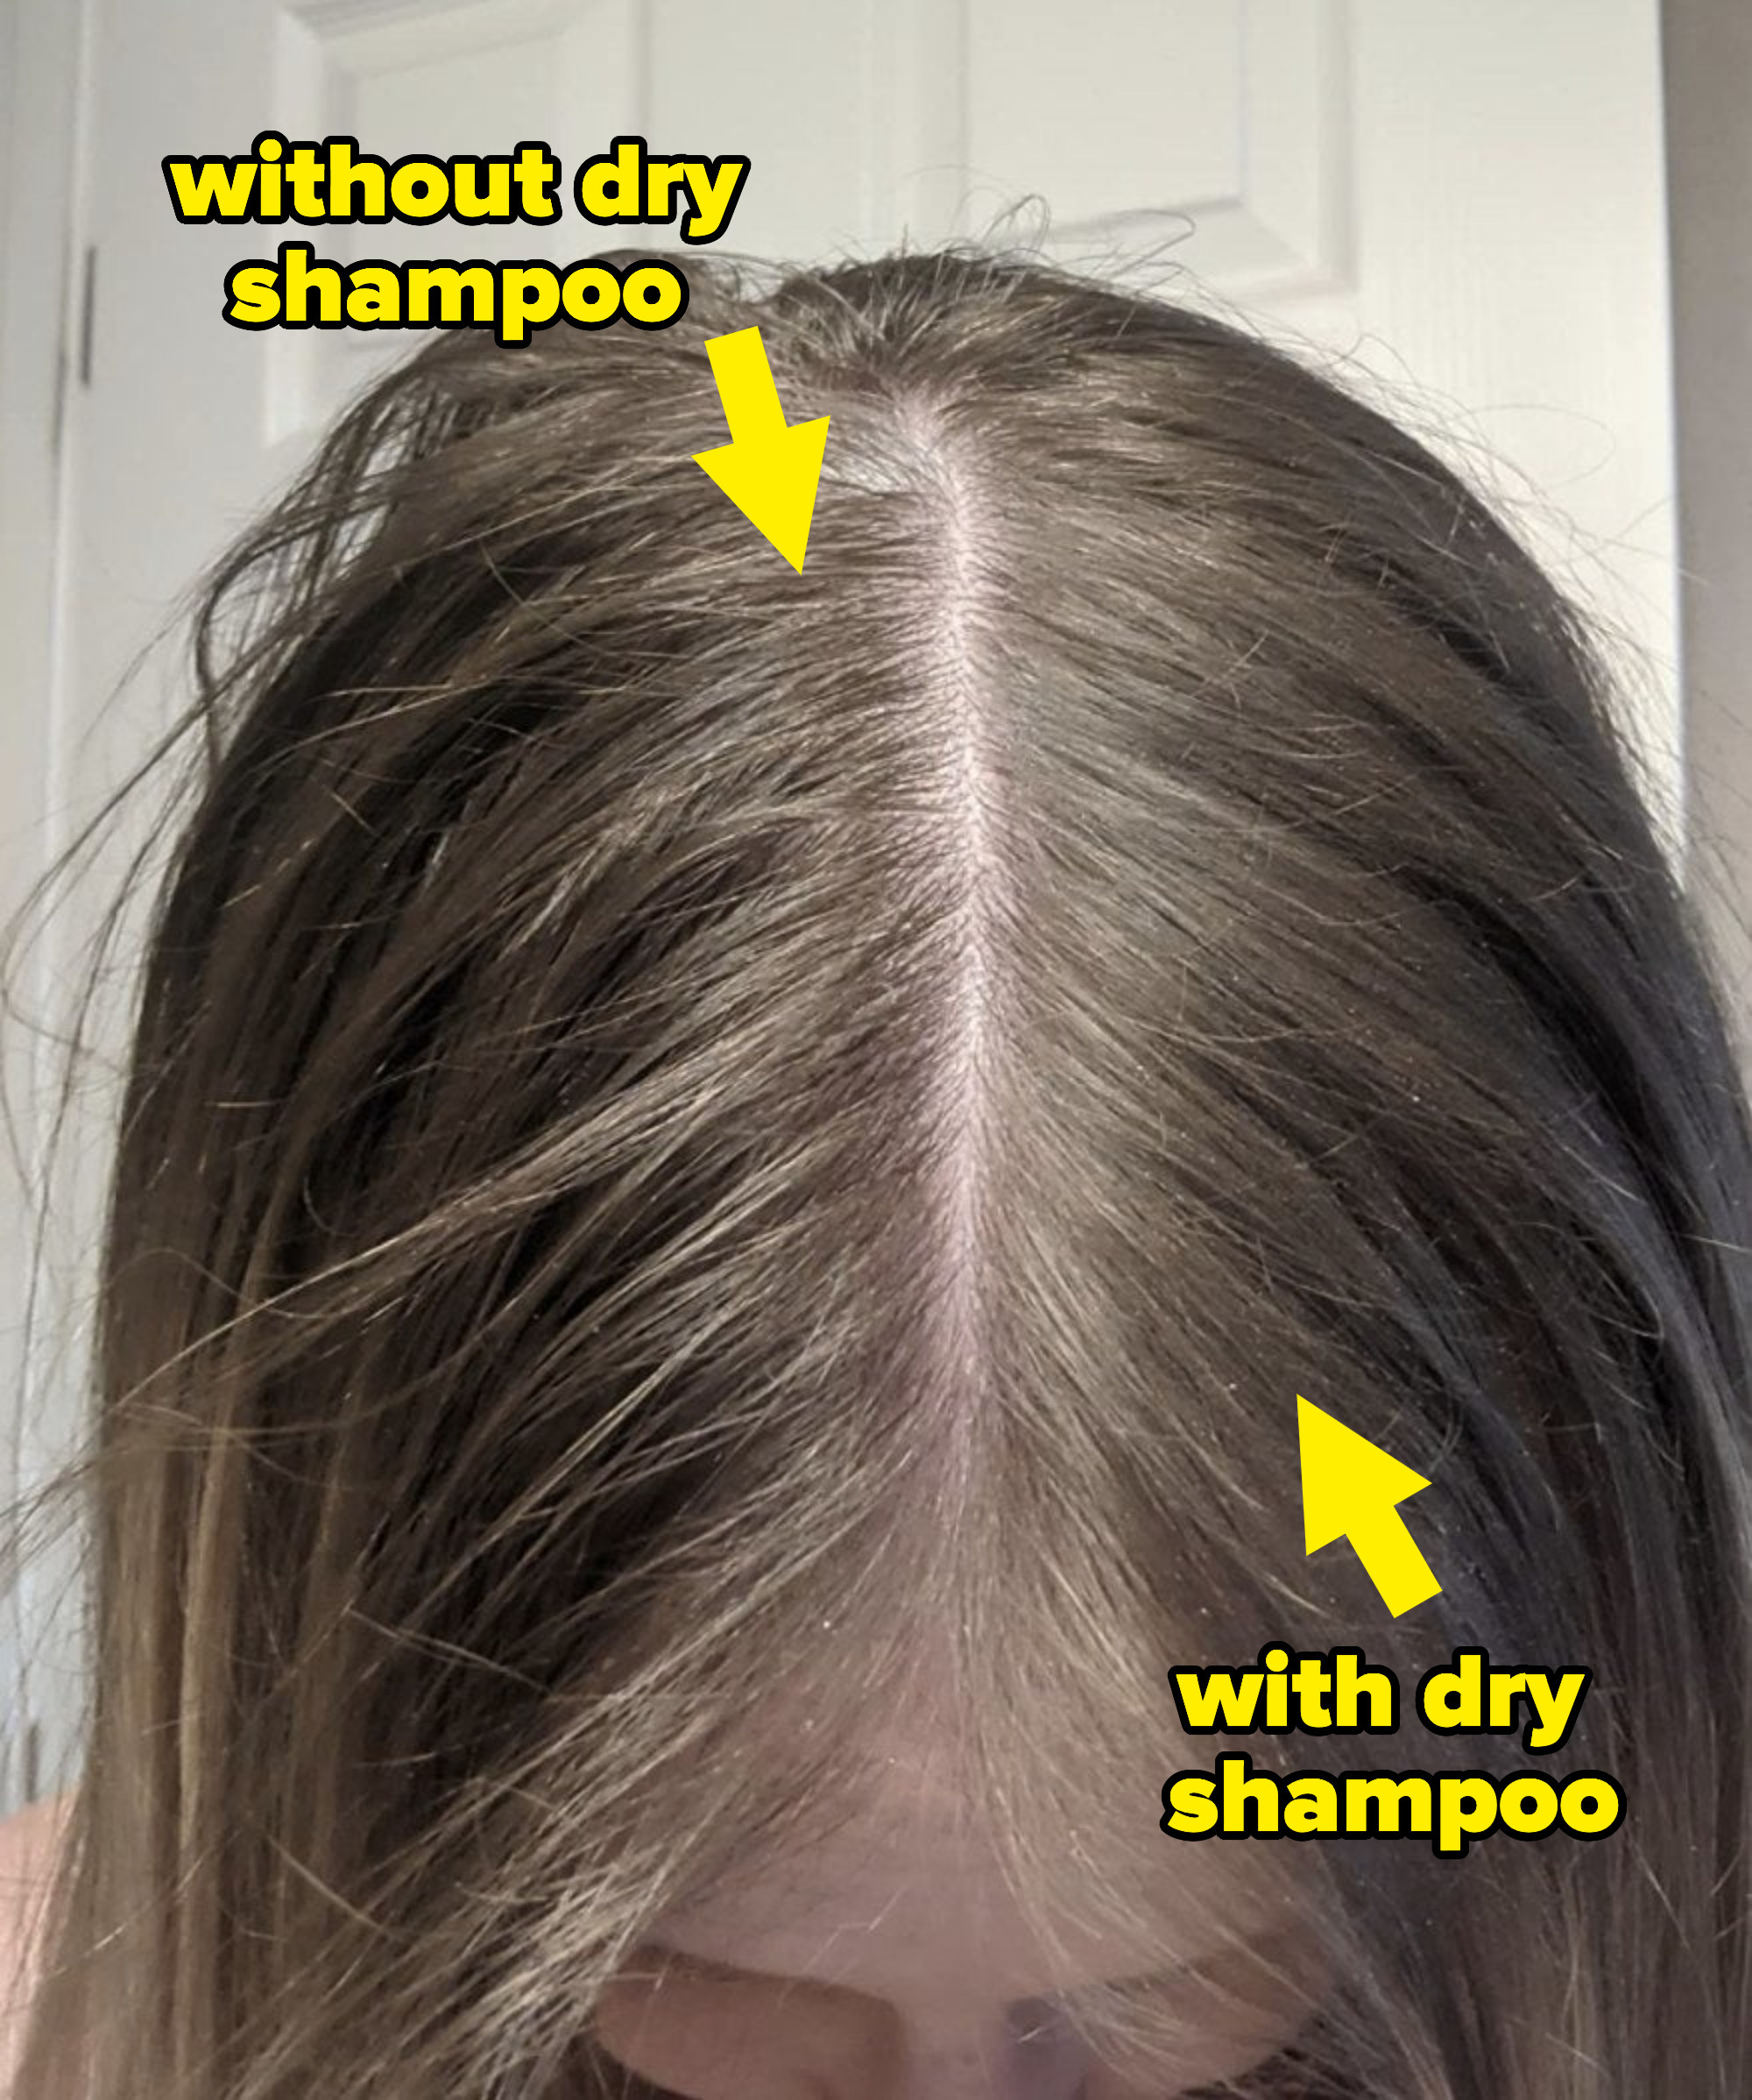 reviewer showing the left part of their hair without the dry shampoo, and the right with dry shampoo, revealing it looks less tangled and less greasy